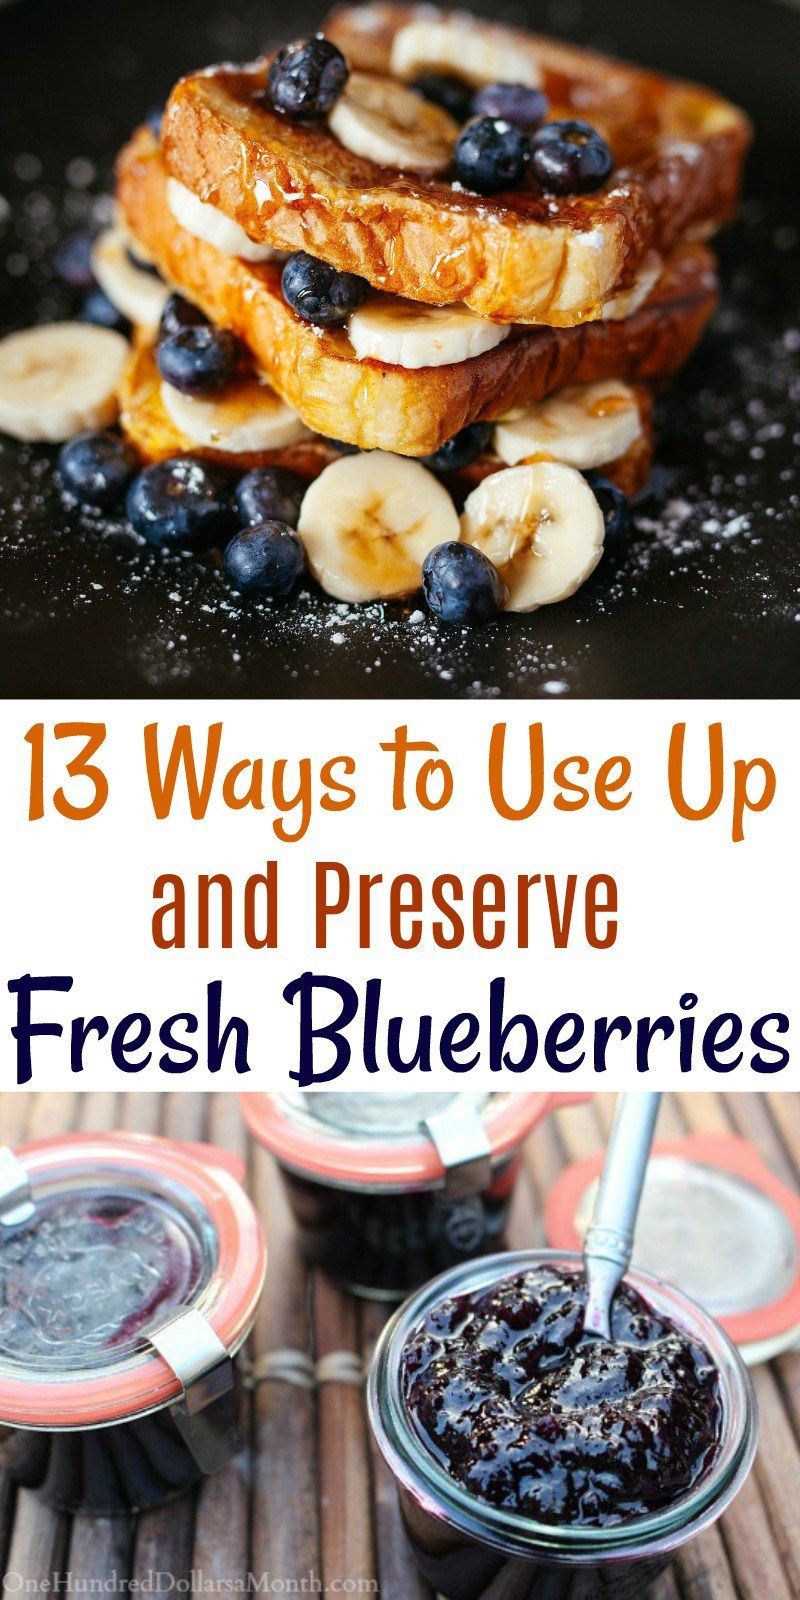 13 ways to use up and preserve fresh blueberries one